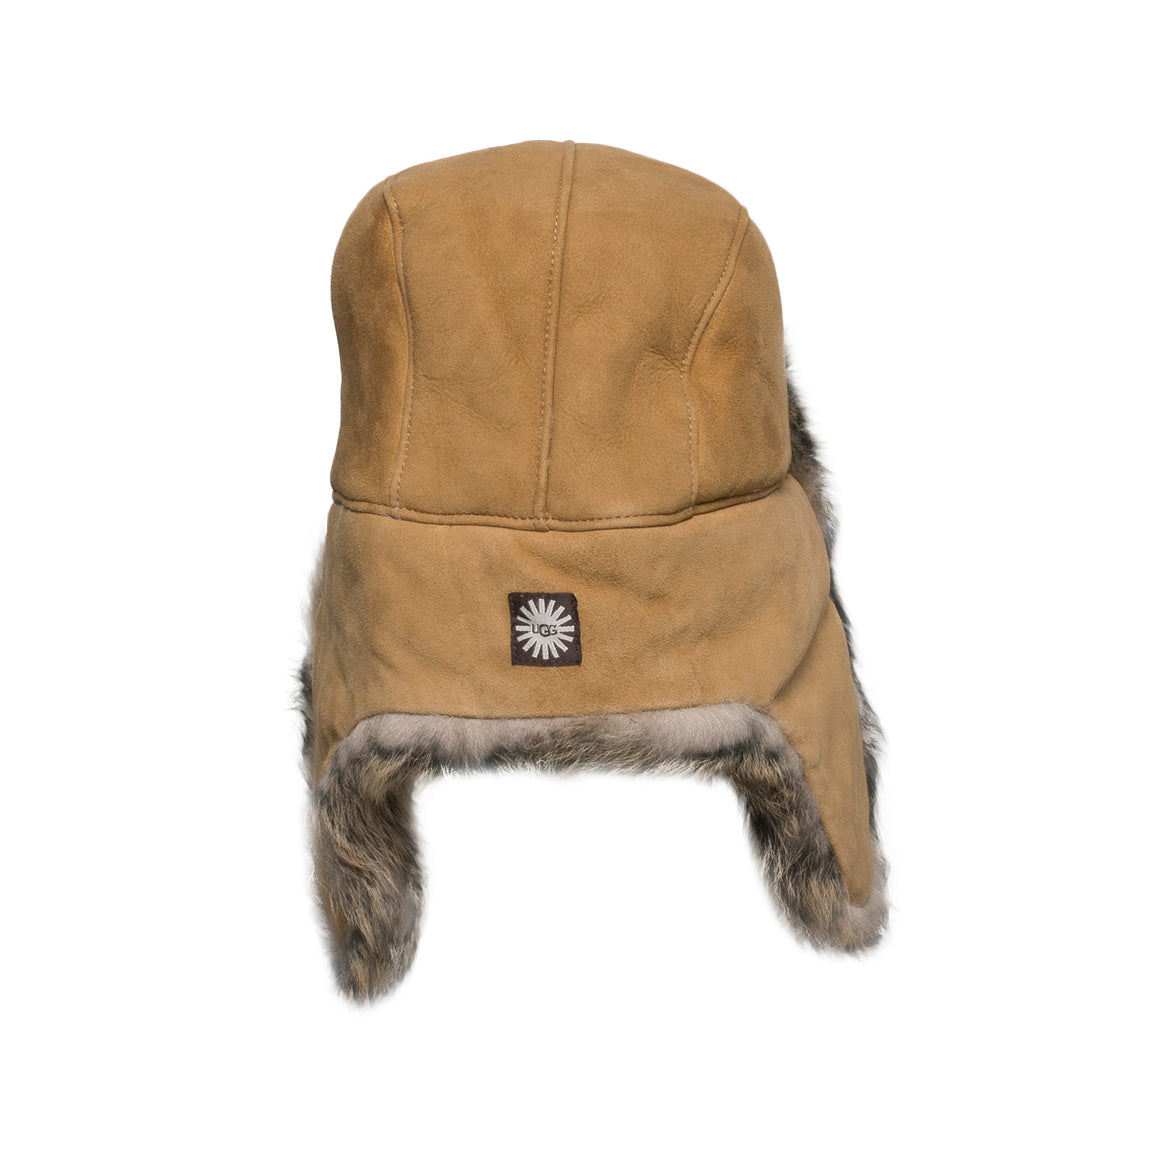 UGG Toscana Long Pile Trapper Chestnut Hat - Women's